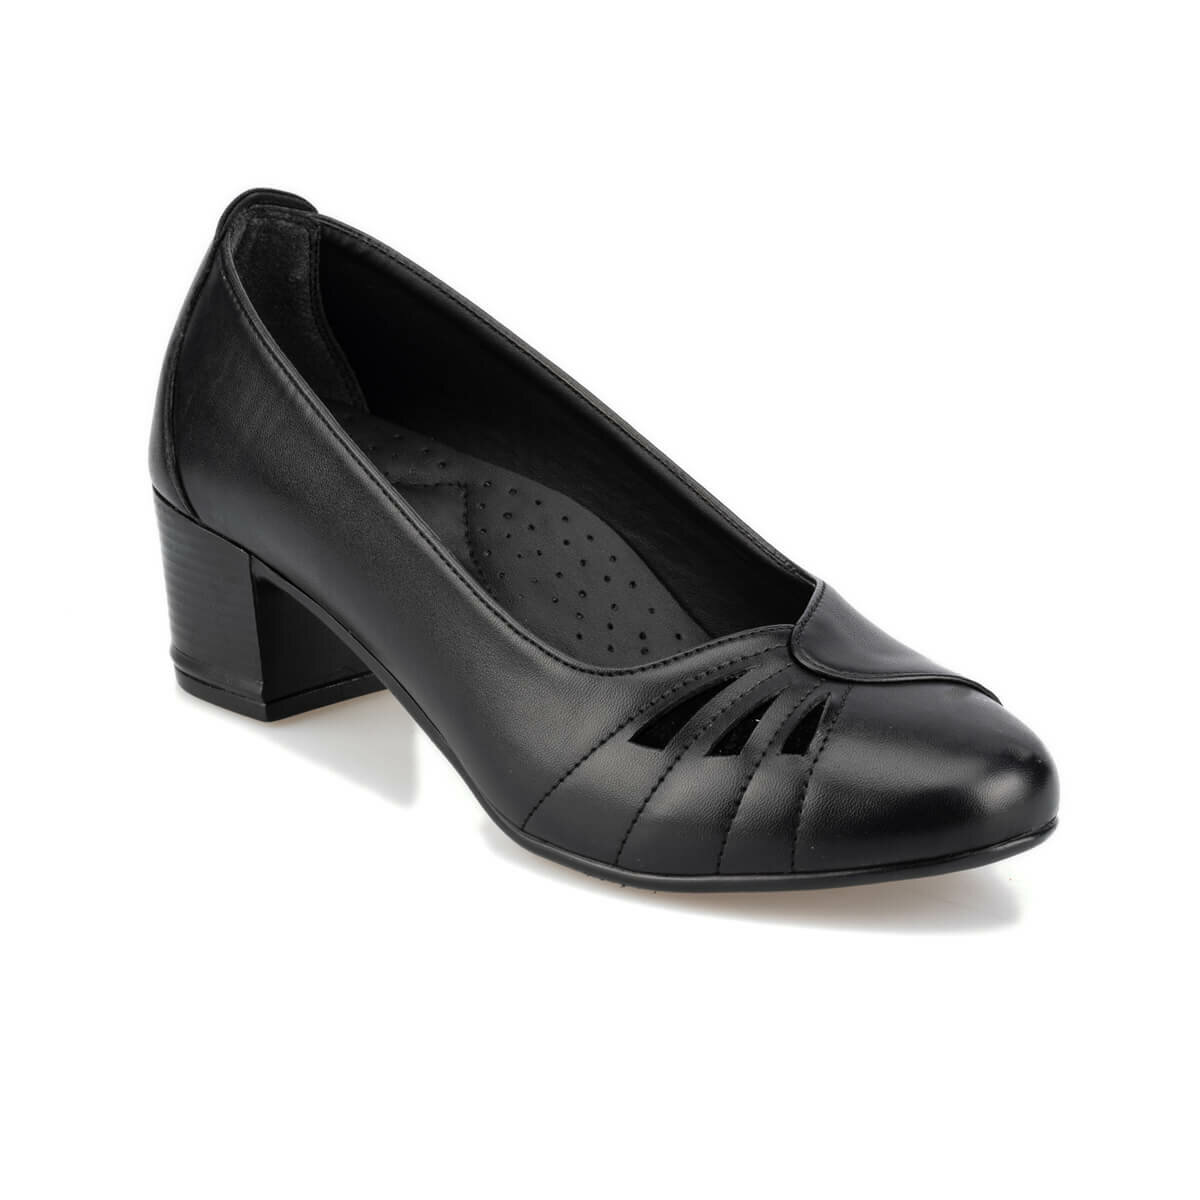 FLO 92.151061.Z Black Women Gova Shoes Polaris